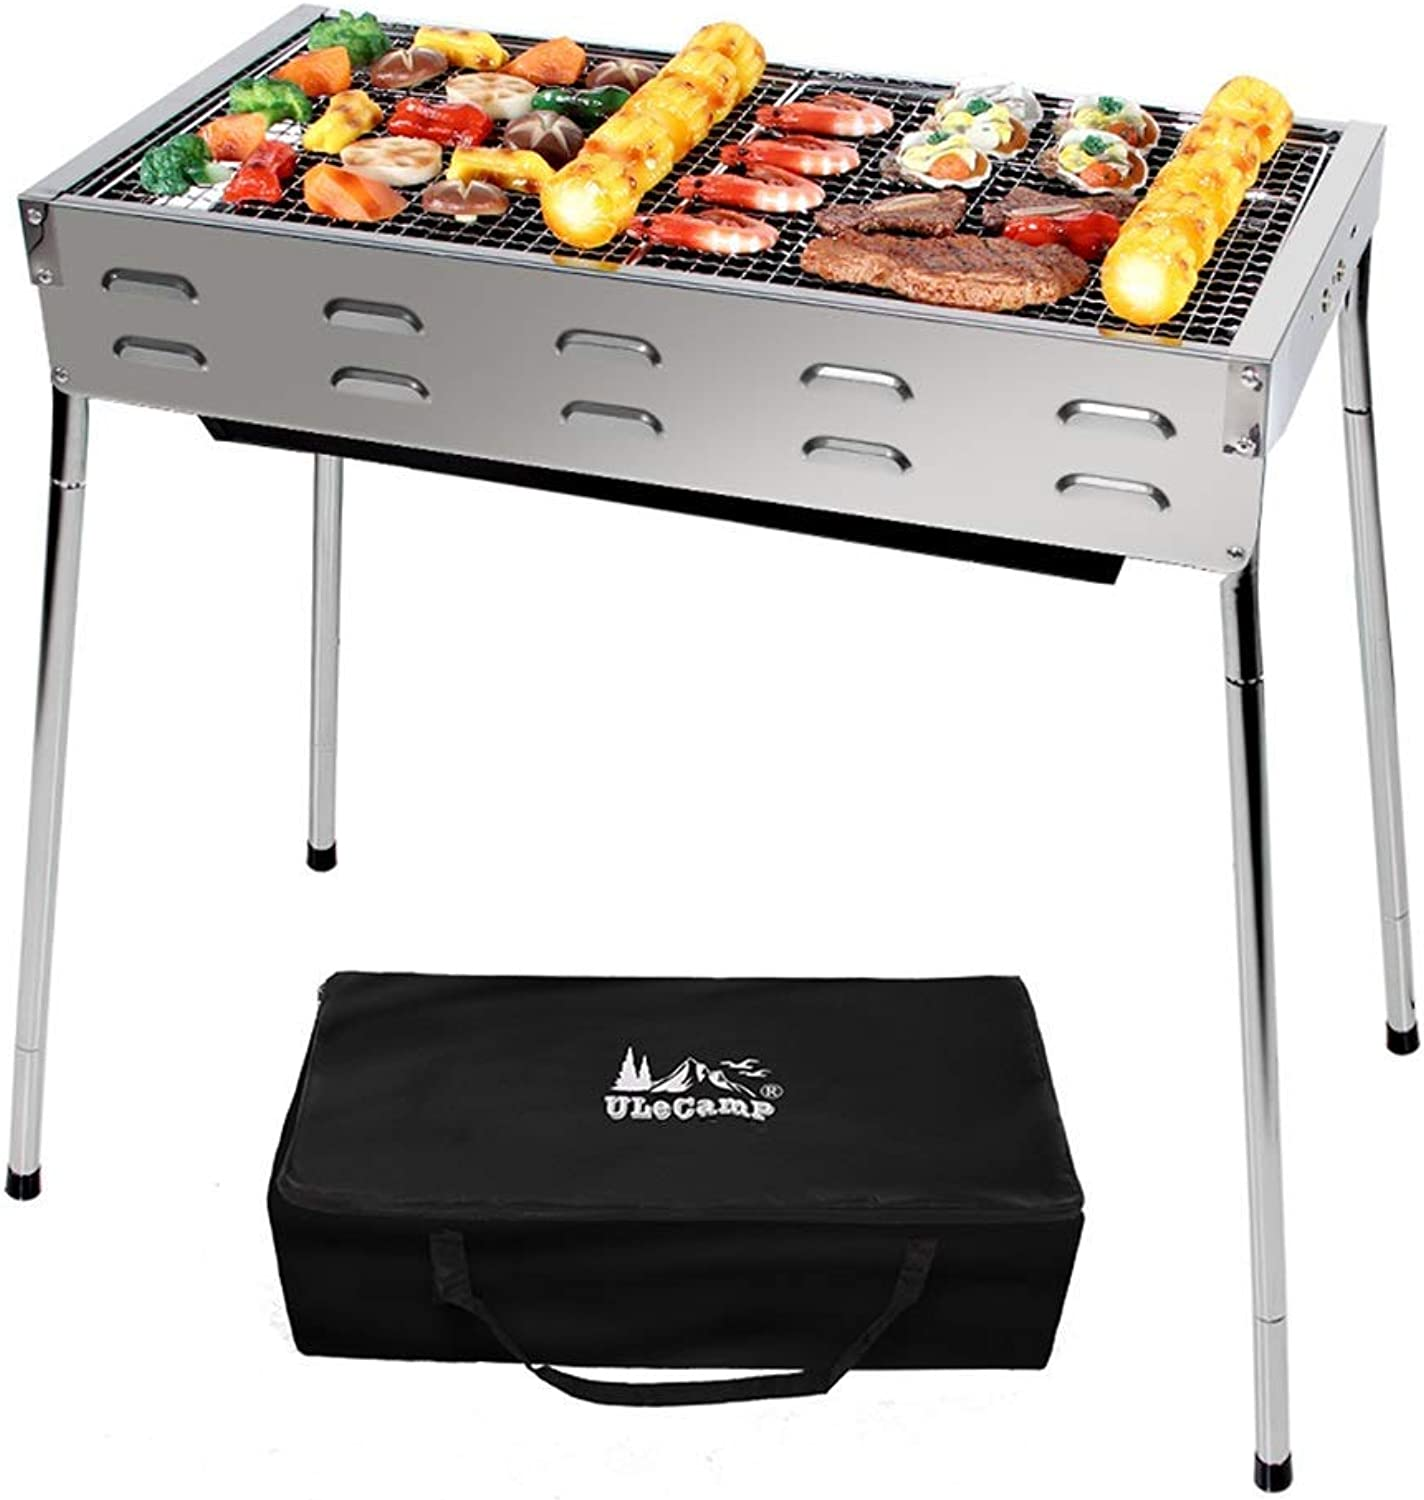 BBQ Supplies Barbecue Adjustable Charcoal Barbecue Grill, Portable Stainless Steel for Travel Camping Outdoors BBQ